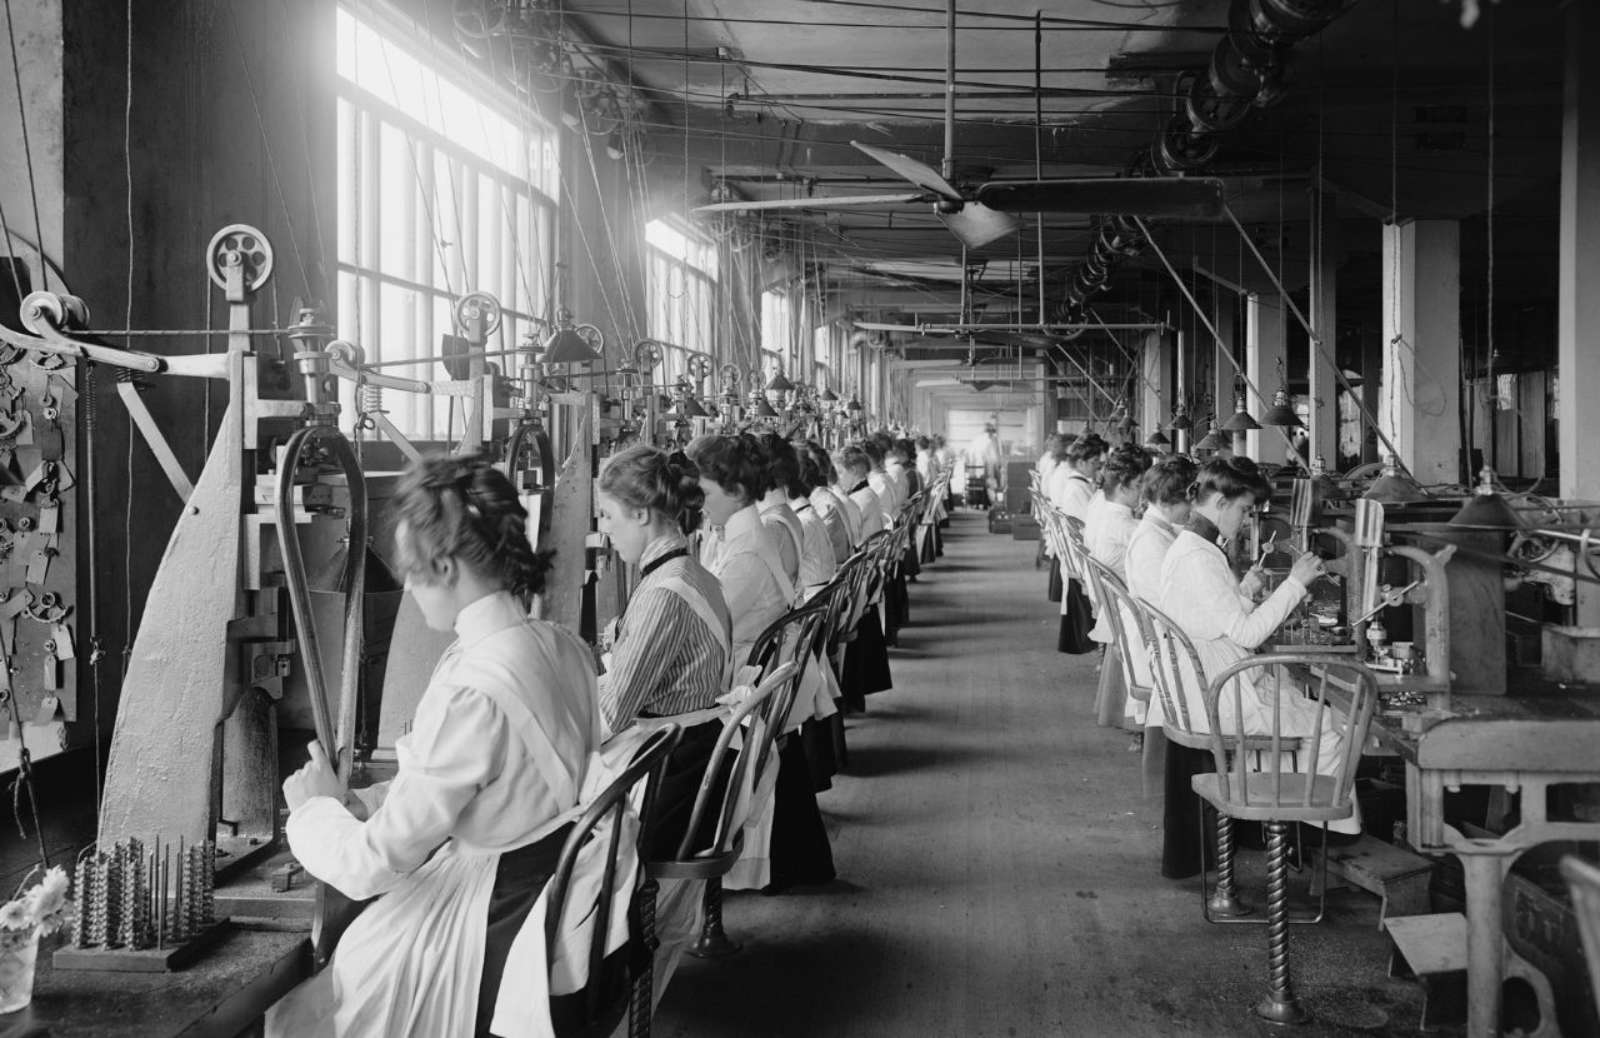 Vintage image of women in workshop assembly line sewing on antique machines